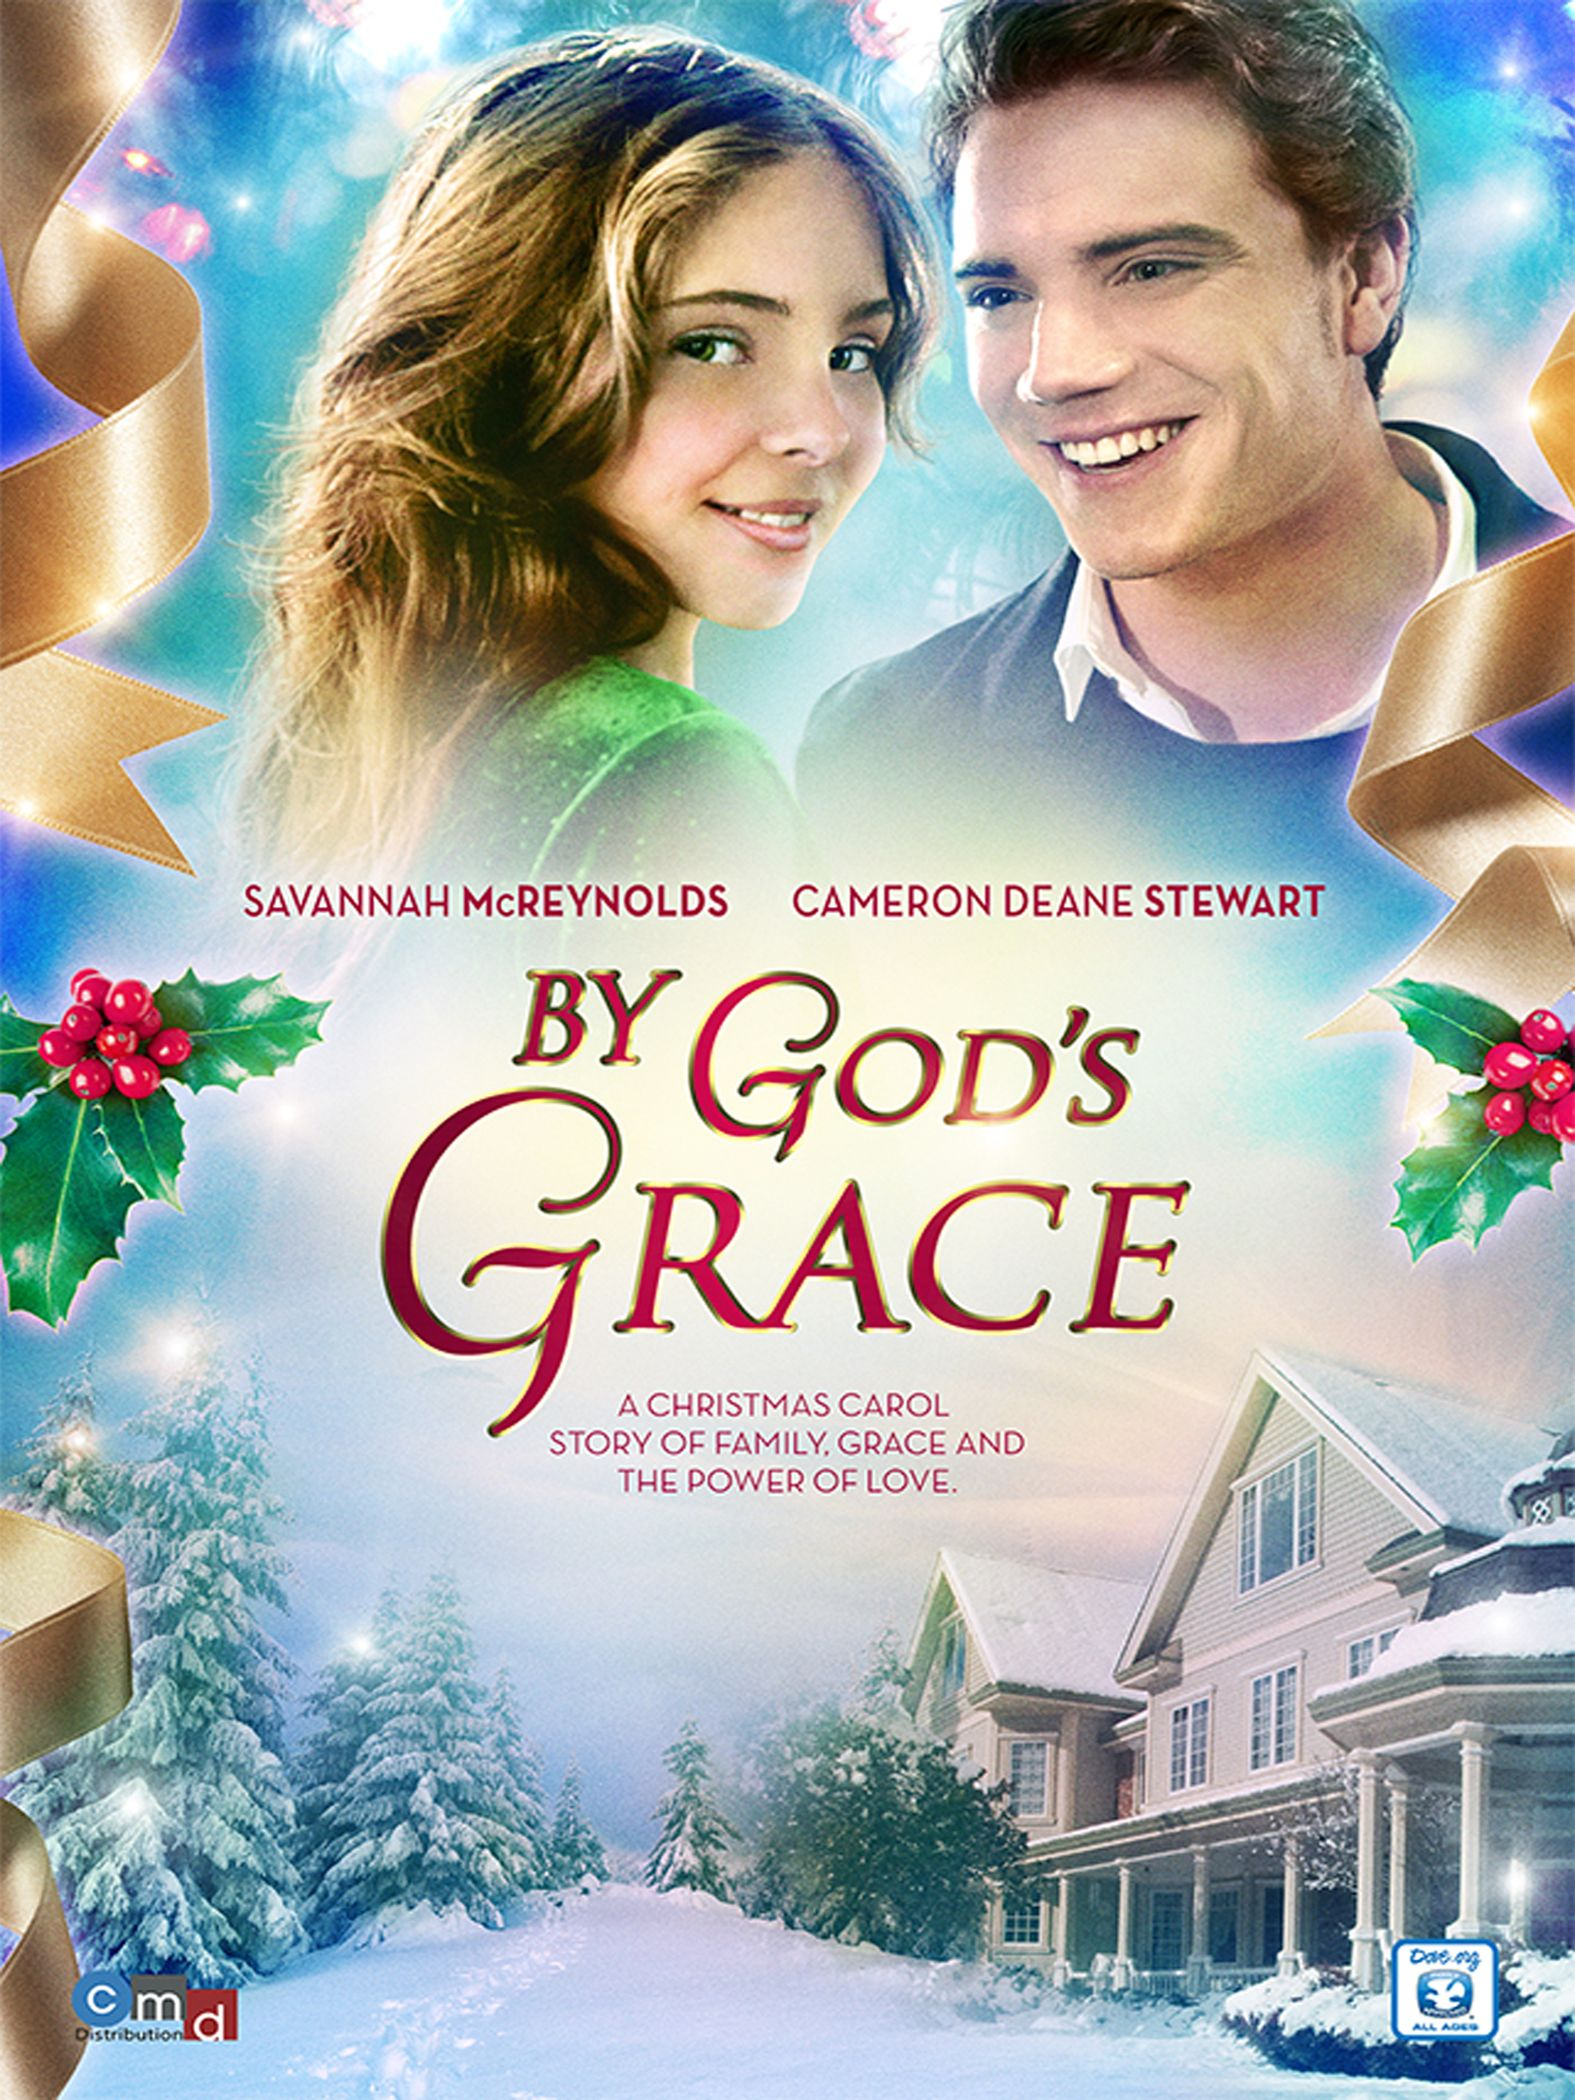 New Christian film from CMD Distribution Inc available on